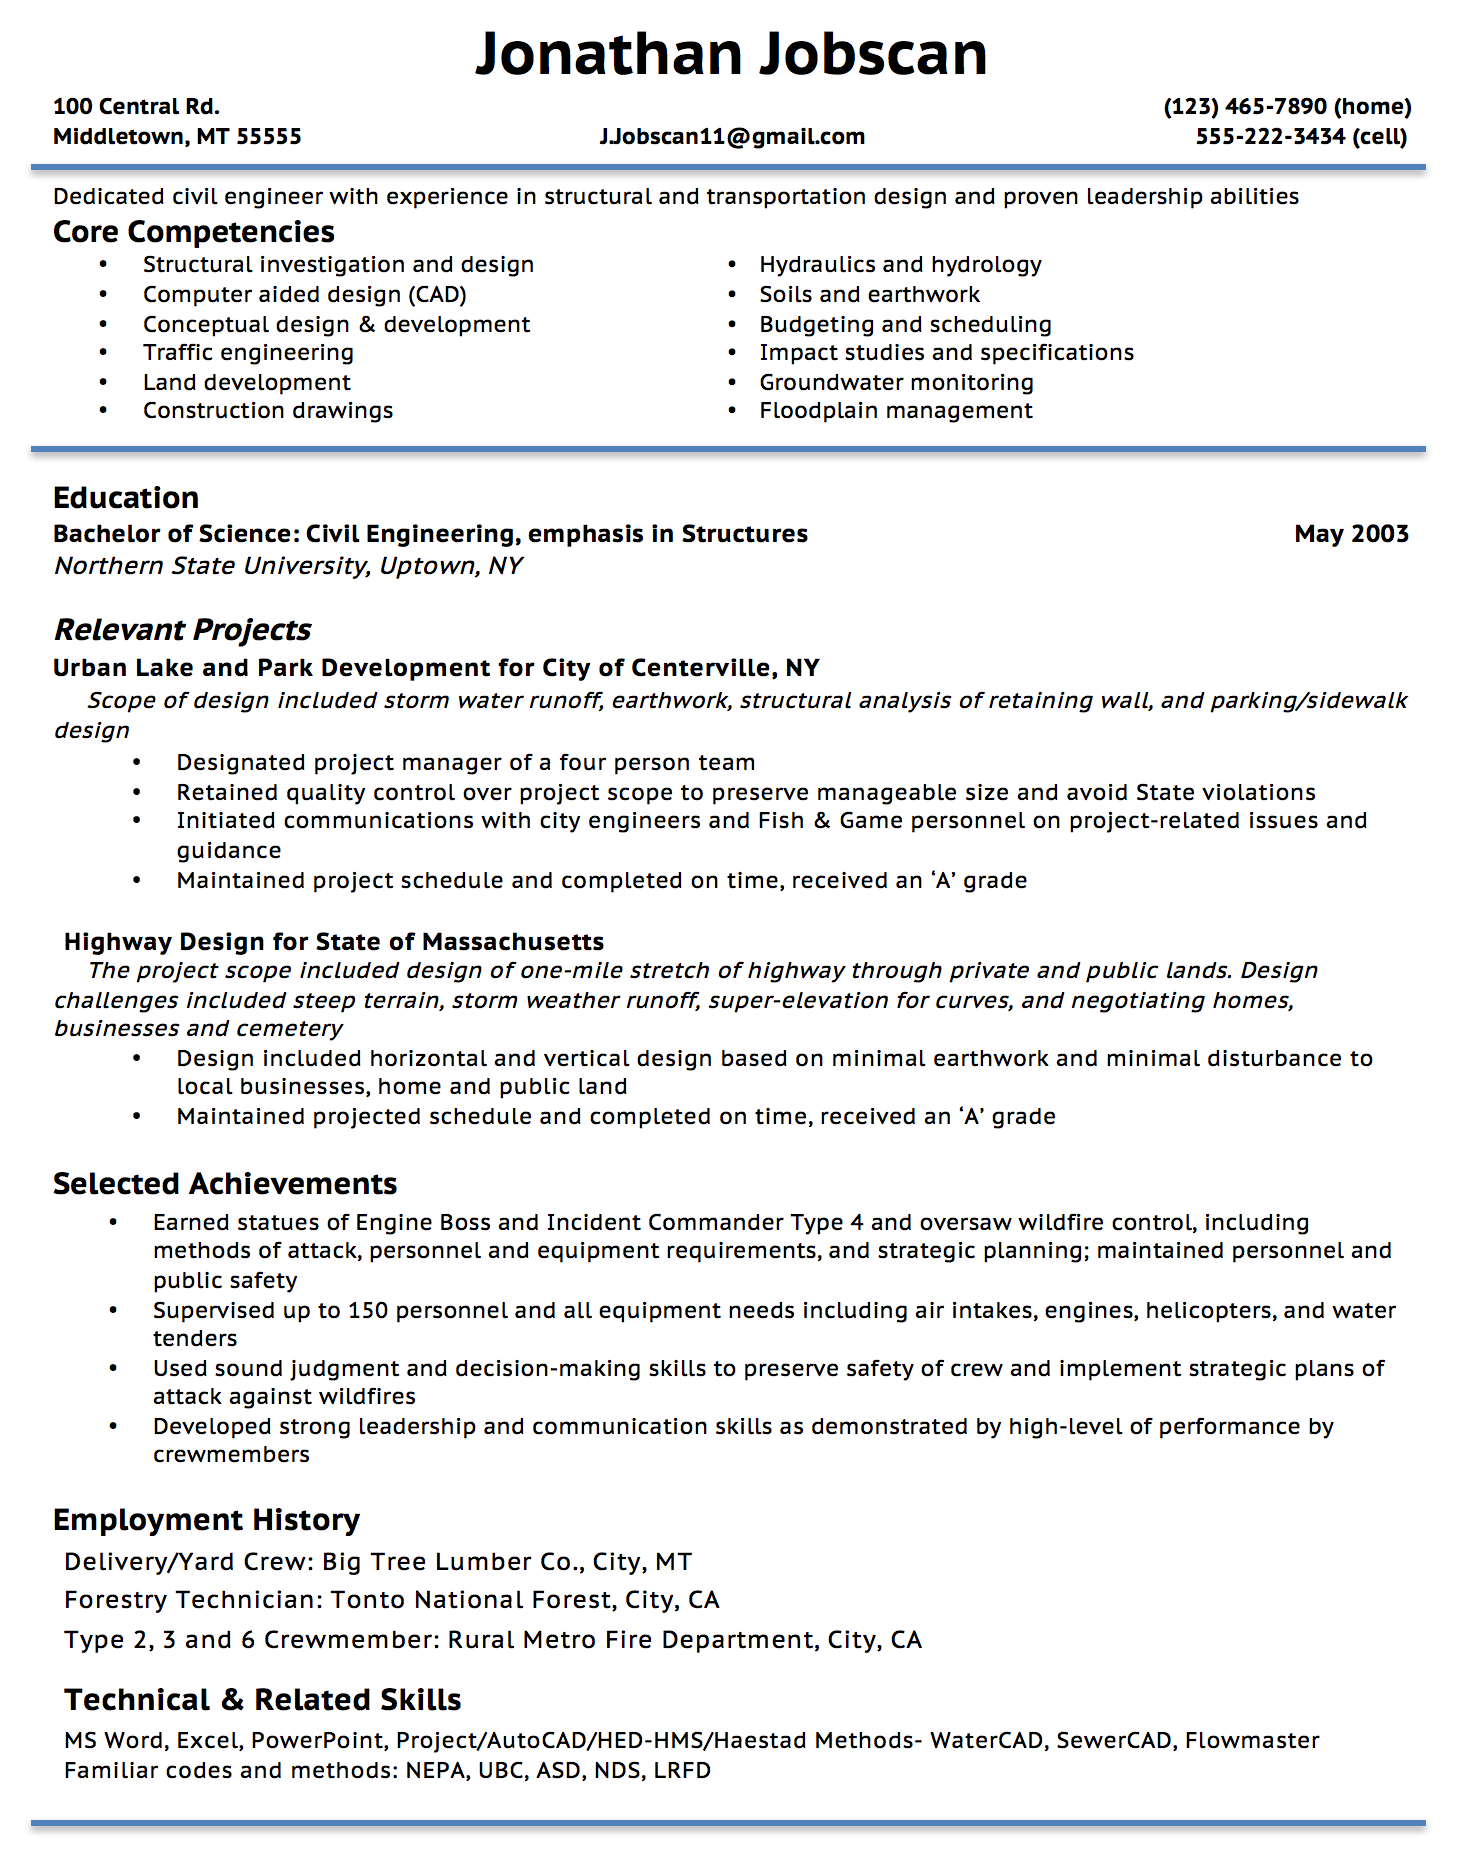 Picnictoimpeachus  Winning Resume Writing Guide  Jobscan With Fascinating Example Of A Functional Resume Format With Cute Resume Services Denver Also Janitor Resume Sample In Addition Federal Job Resume Sample And Basic Resume Objective Statements As Well As Is It Okay To Have A Two Page Resume Additionally Resume Tenplate From Jobscanco With Picnictoimpeachus  Fascinating Resume Writing Guide  Jobscan With Cute Example Of A Functional Resume Format And Winning Resume Services Denver Also Janitor Resume Sample In Addition Federal Job Resume Sample From Jobscanco